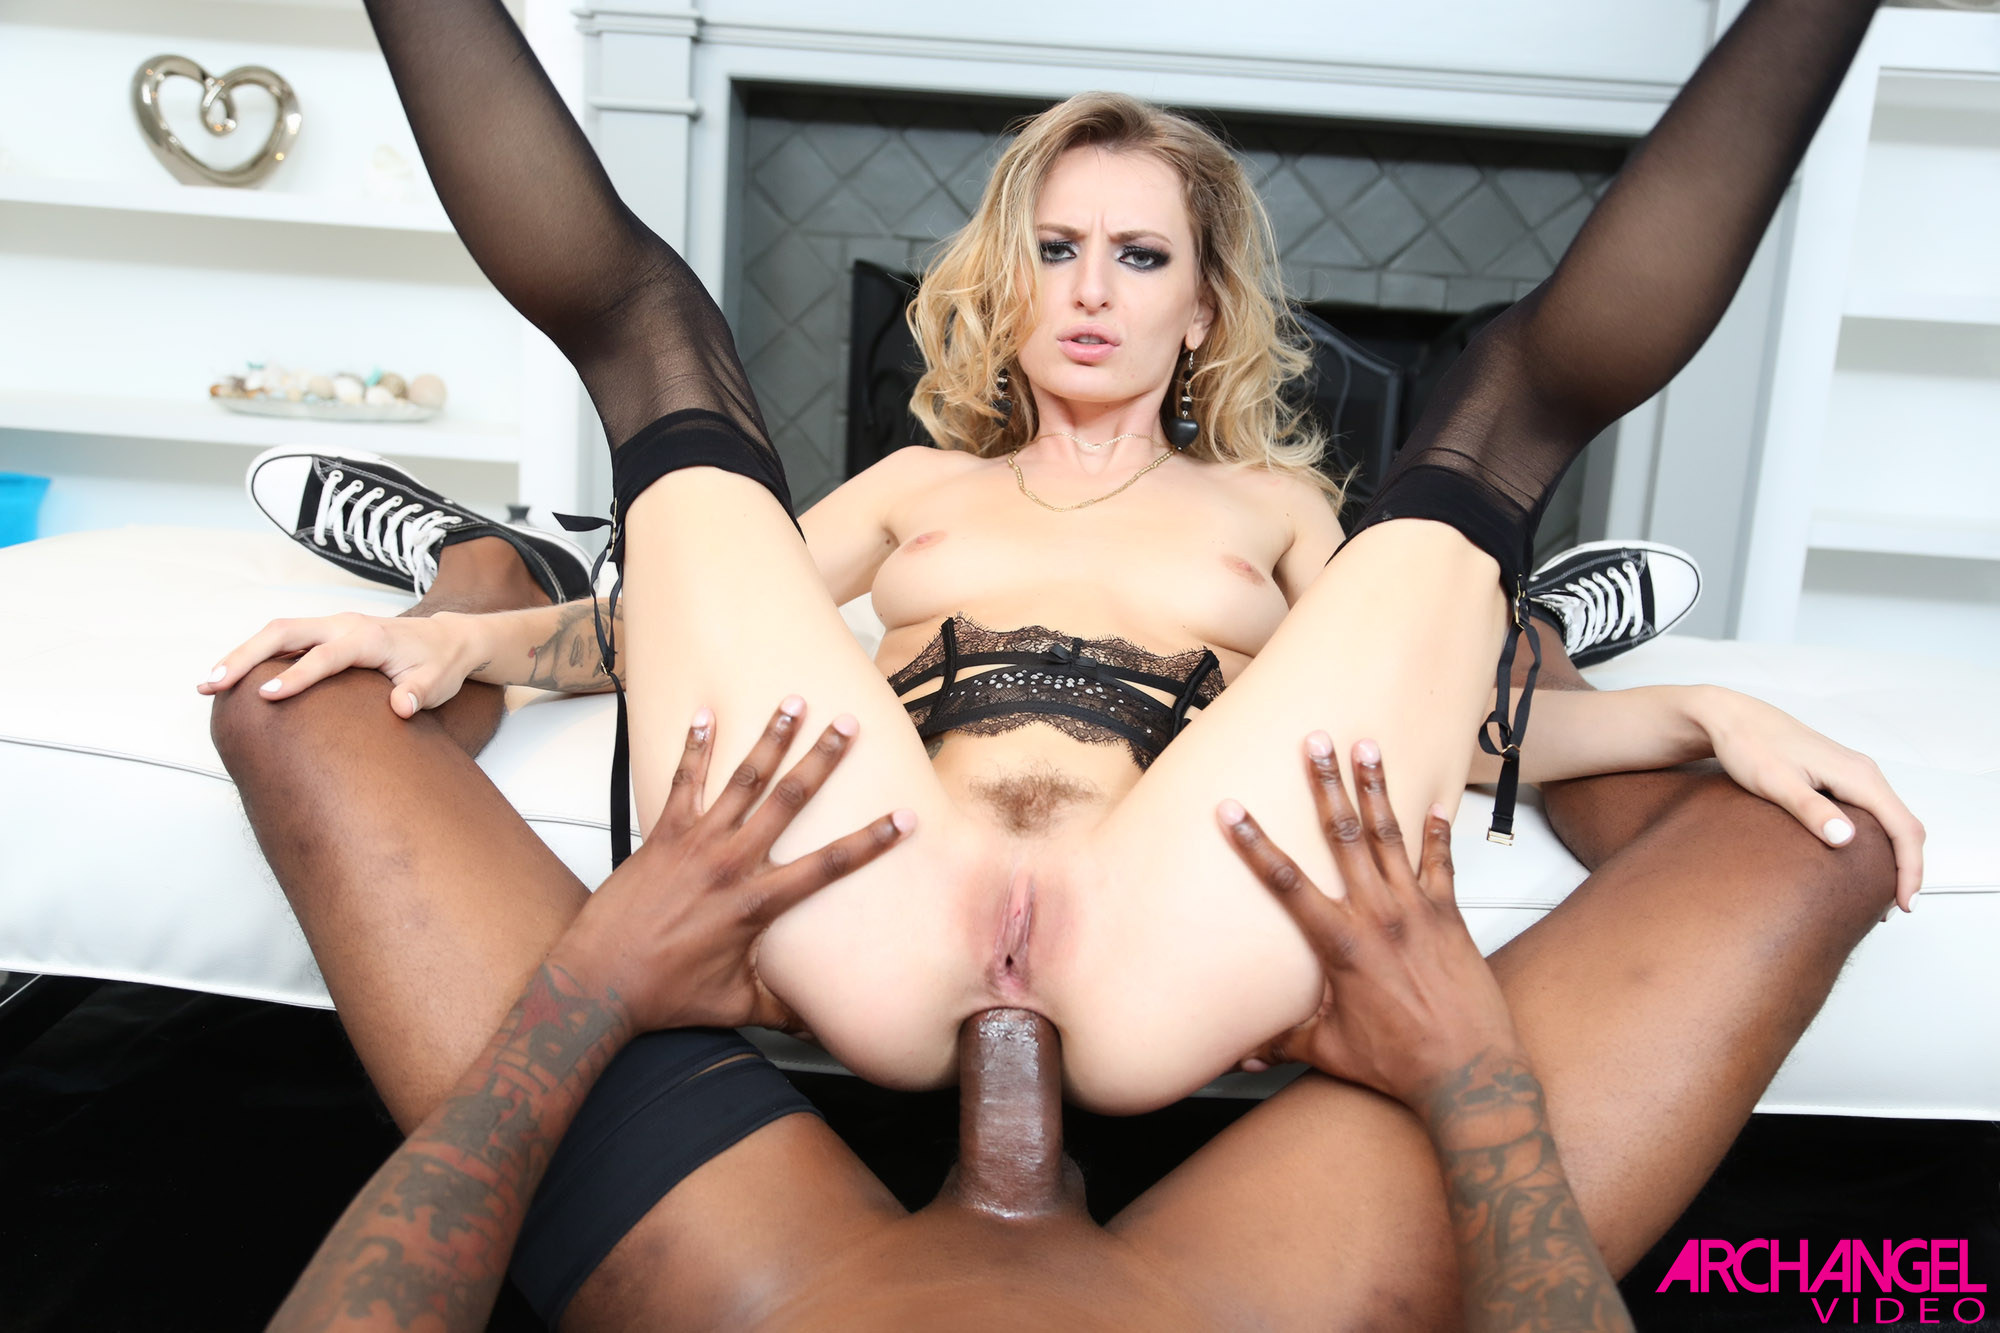 Group of blondes gangbang guy with strapons 7